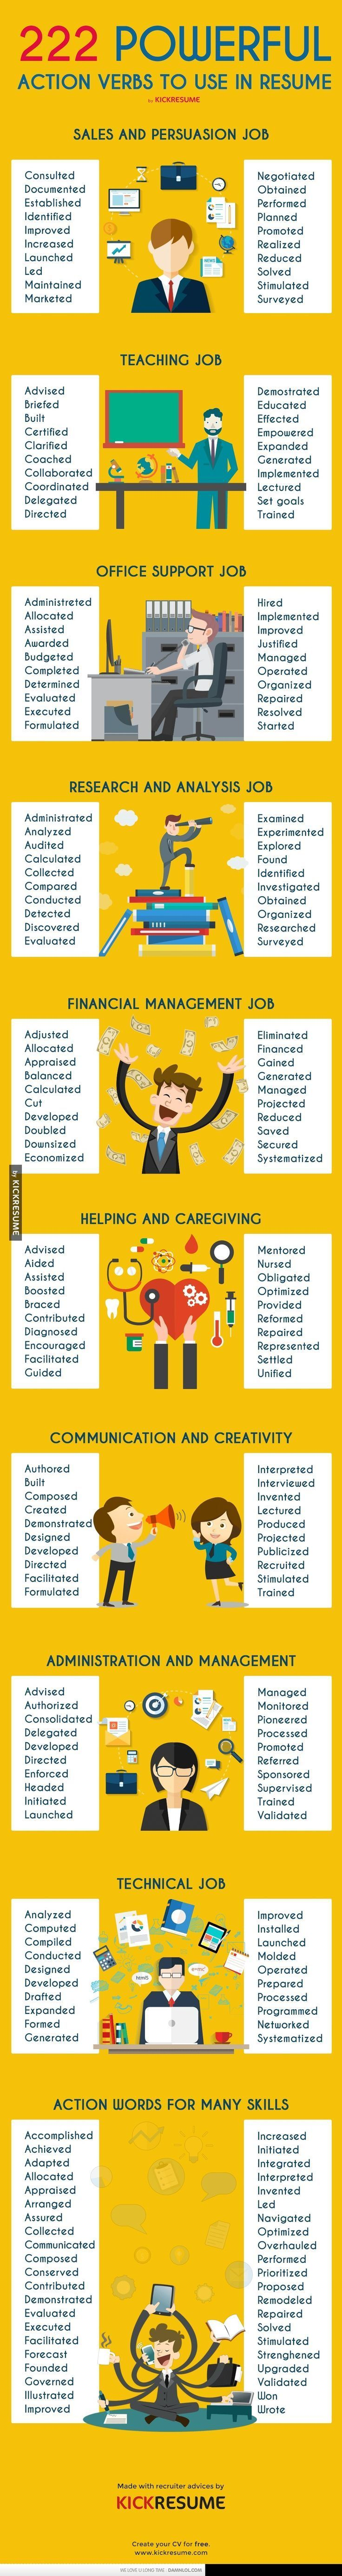 222 Powerful Words For Your Resume                                                                                                                                                                                 More